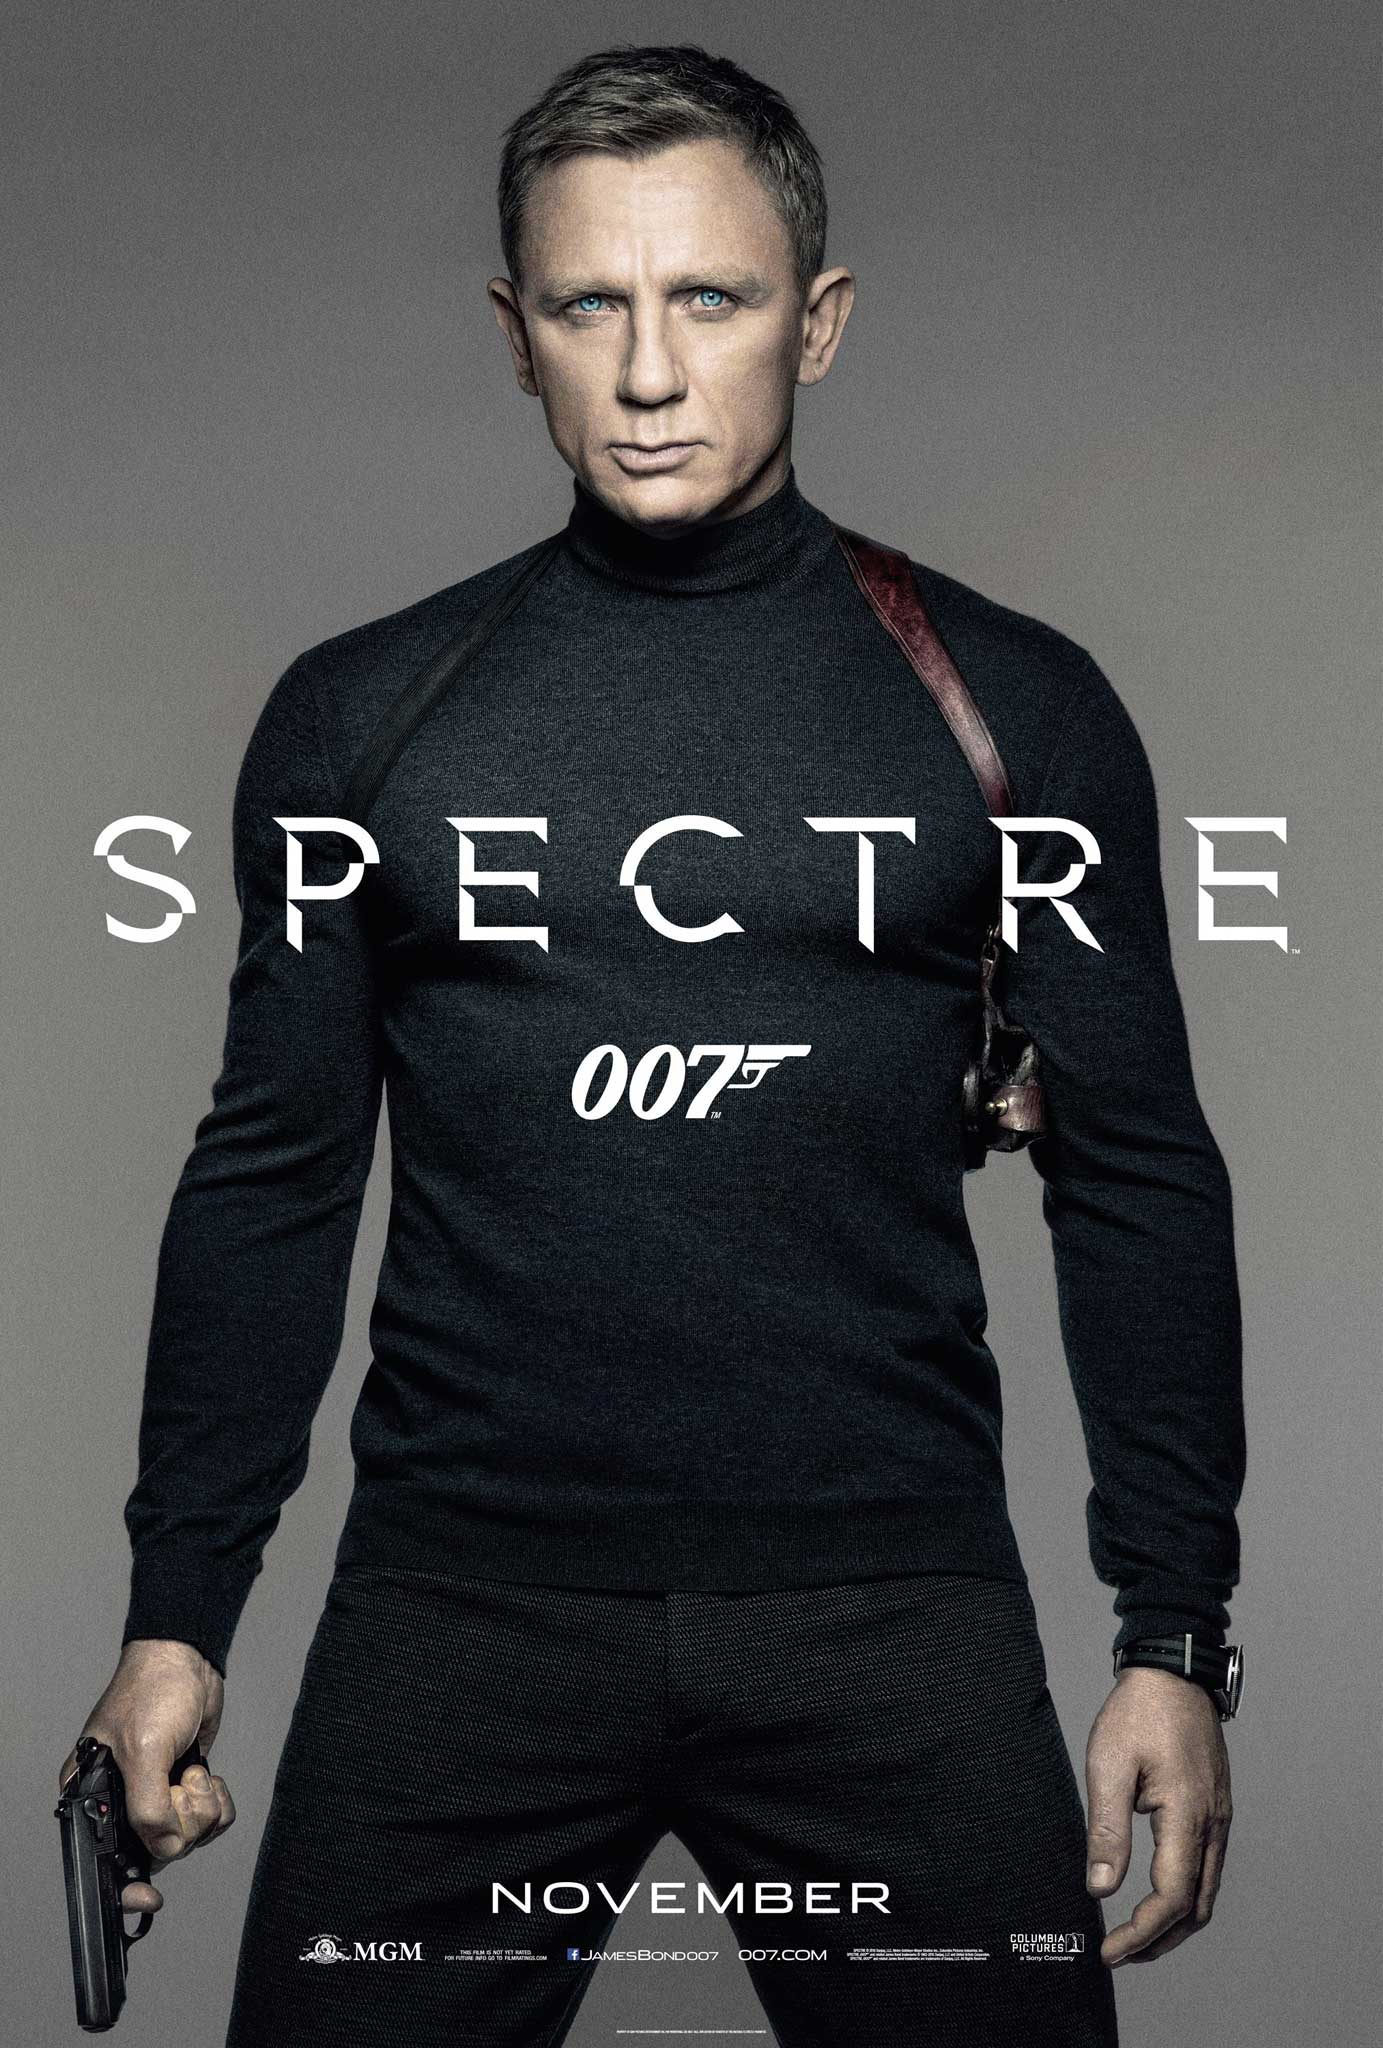 Daniel Craig in a black turtleneck